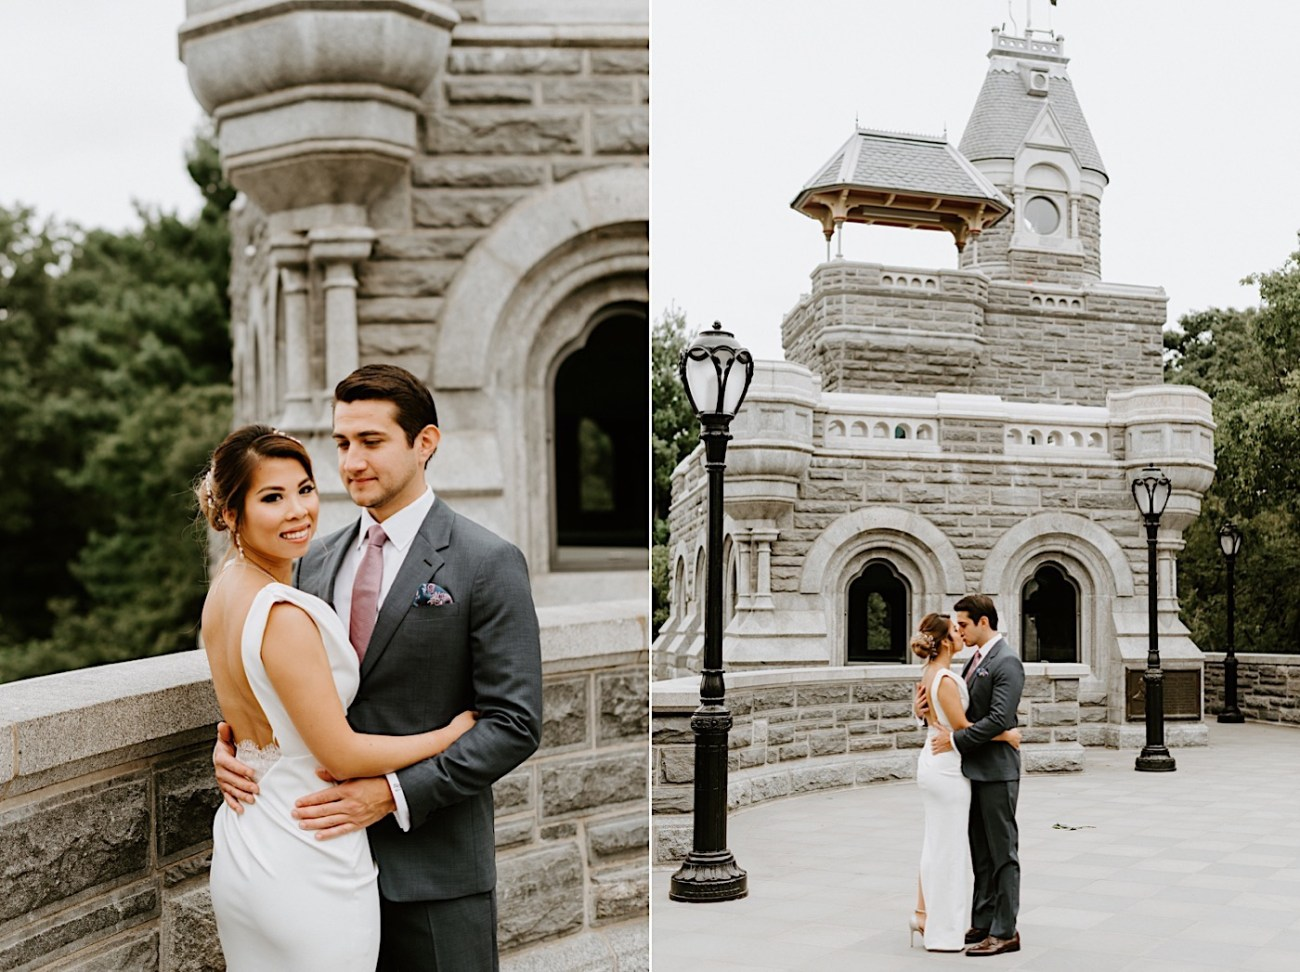 Central Park Elopement NYC Wedding Photographer Central Park Wedding Photos 02